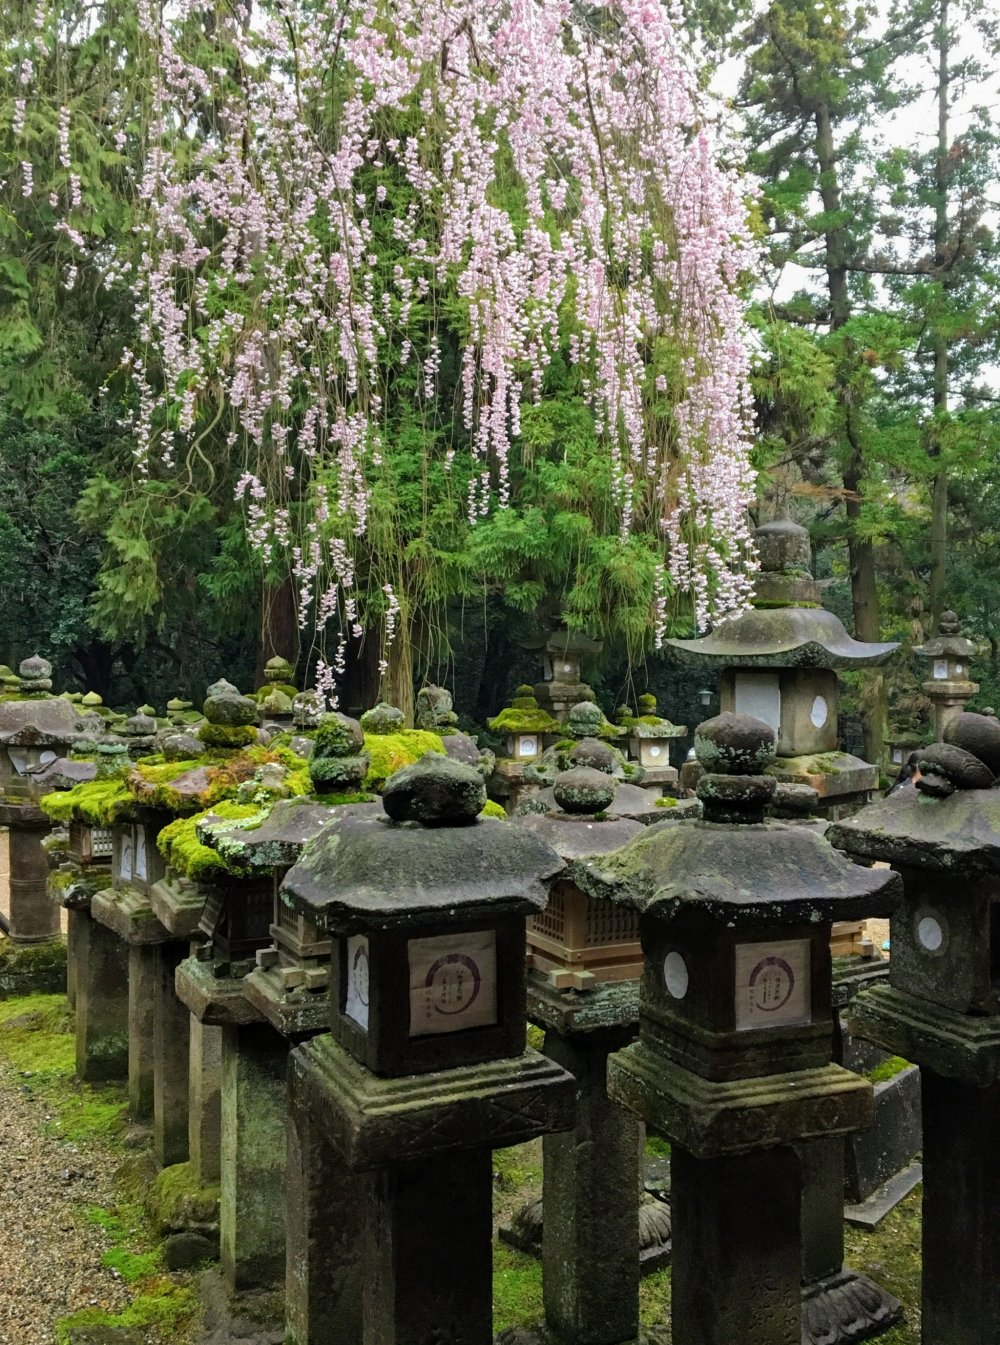 Cherry blossoms form a beautiful backdrop to the mossy stone lanterns